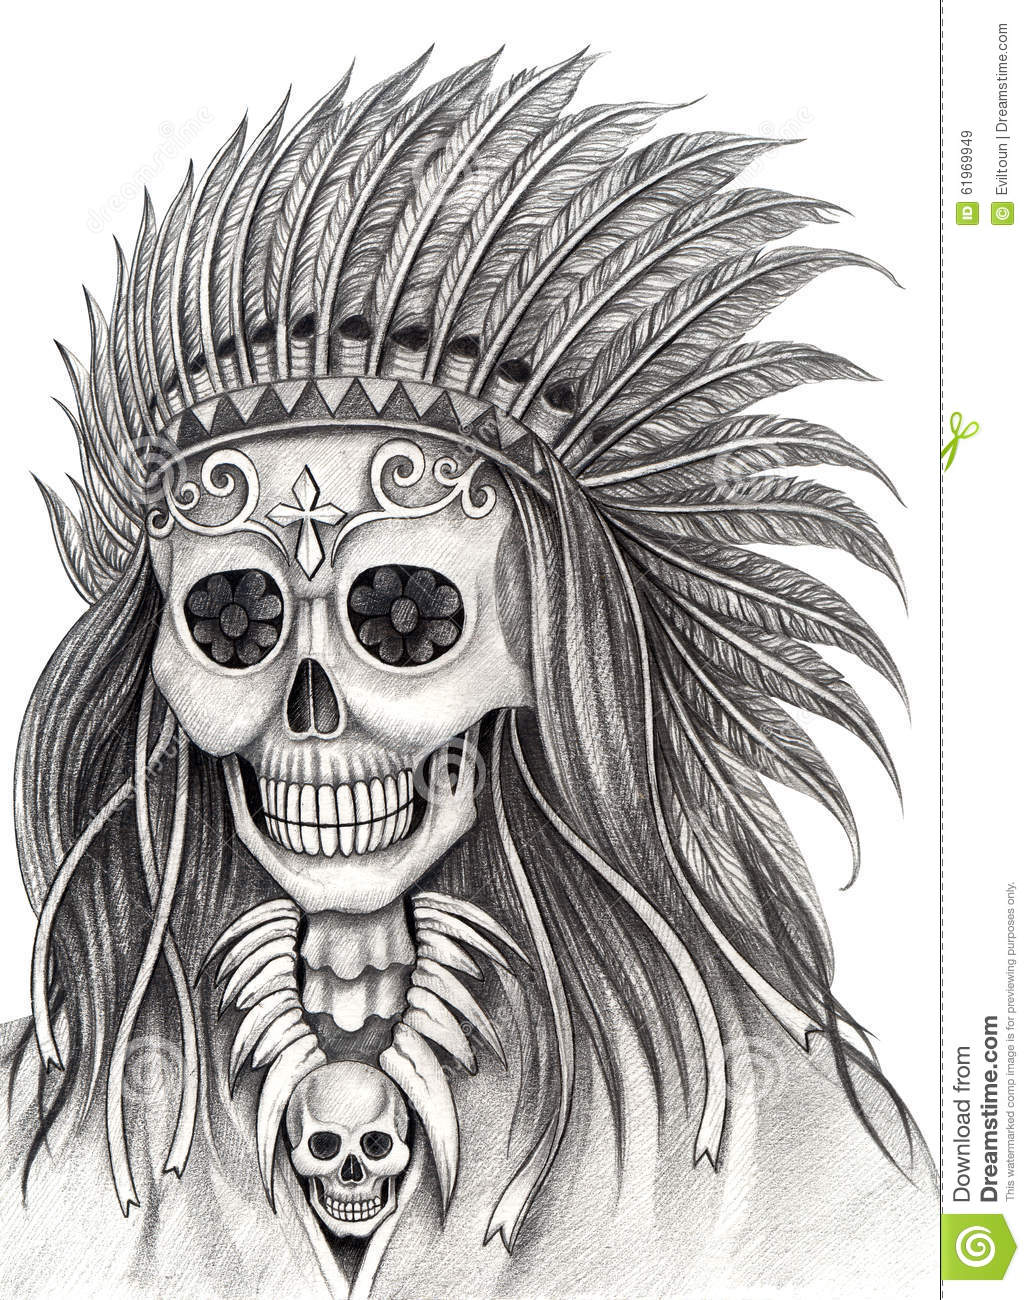 Art design indian skull smiley face day of the dead festival hand pencil drawing on paper